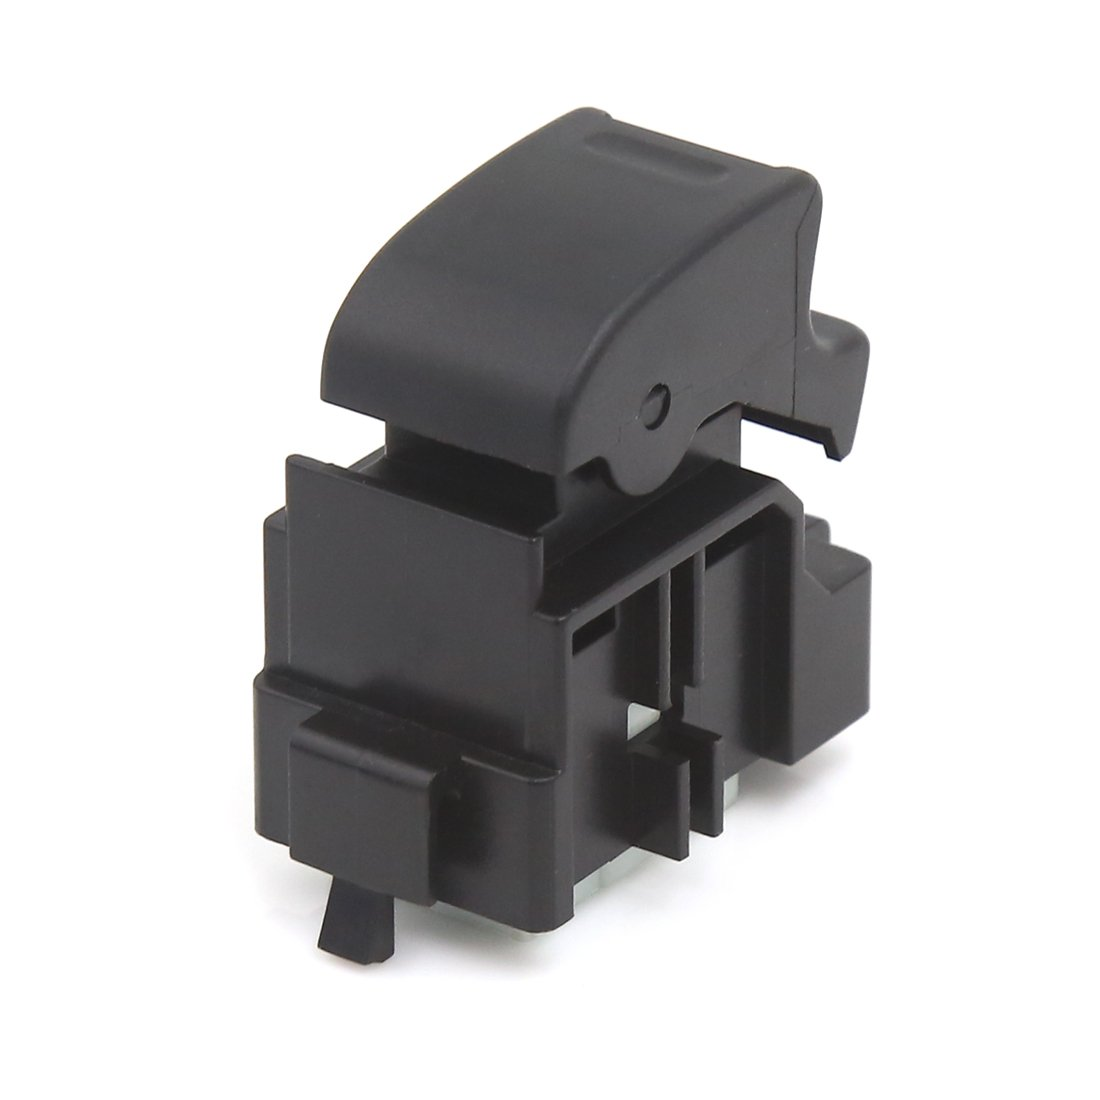 uxcell Passenger Side Power Window Switch 8481032070 for Toyota Lexus Camry Corolla Pickup Truck a16090500ux0534